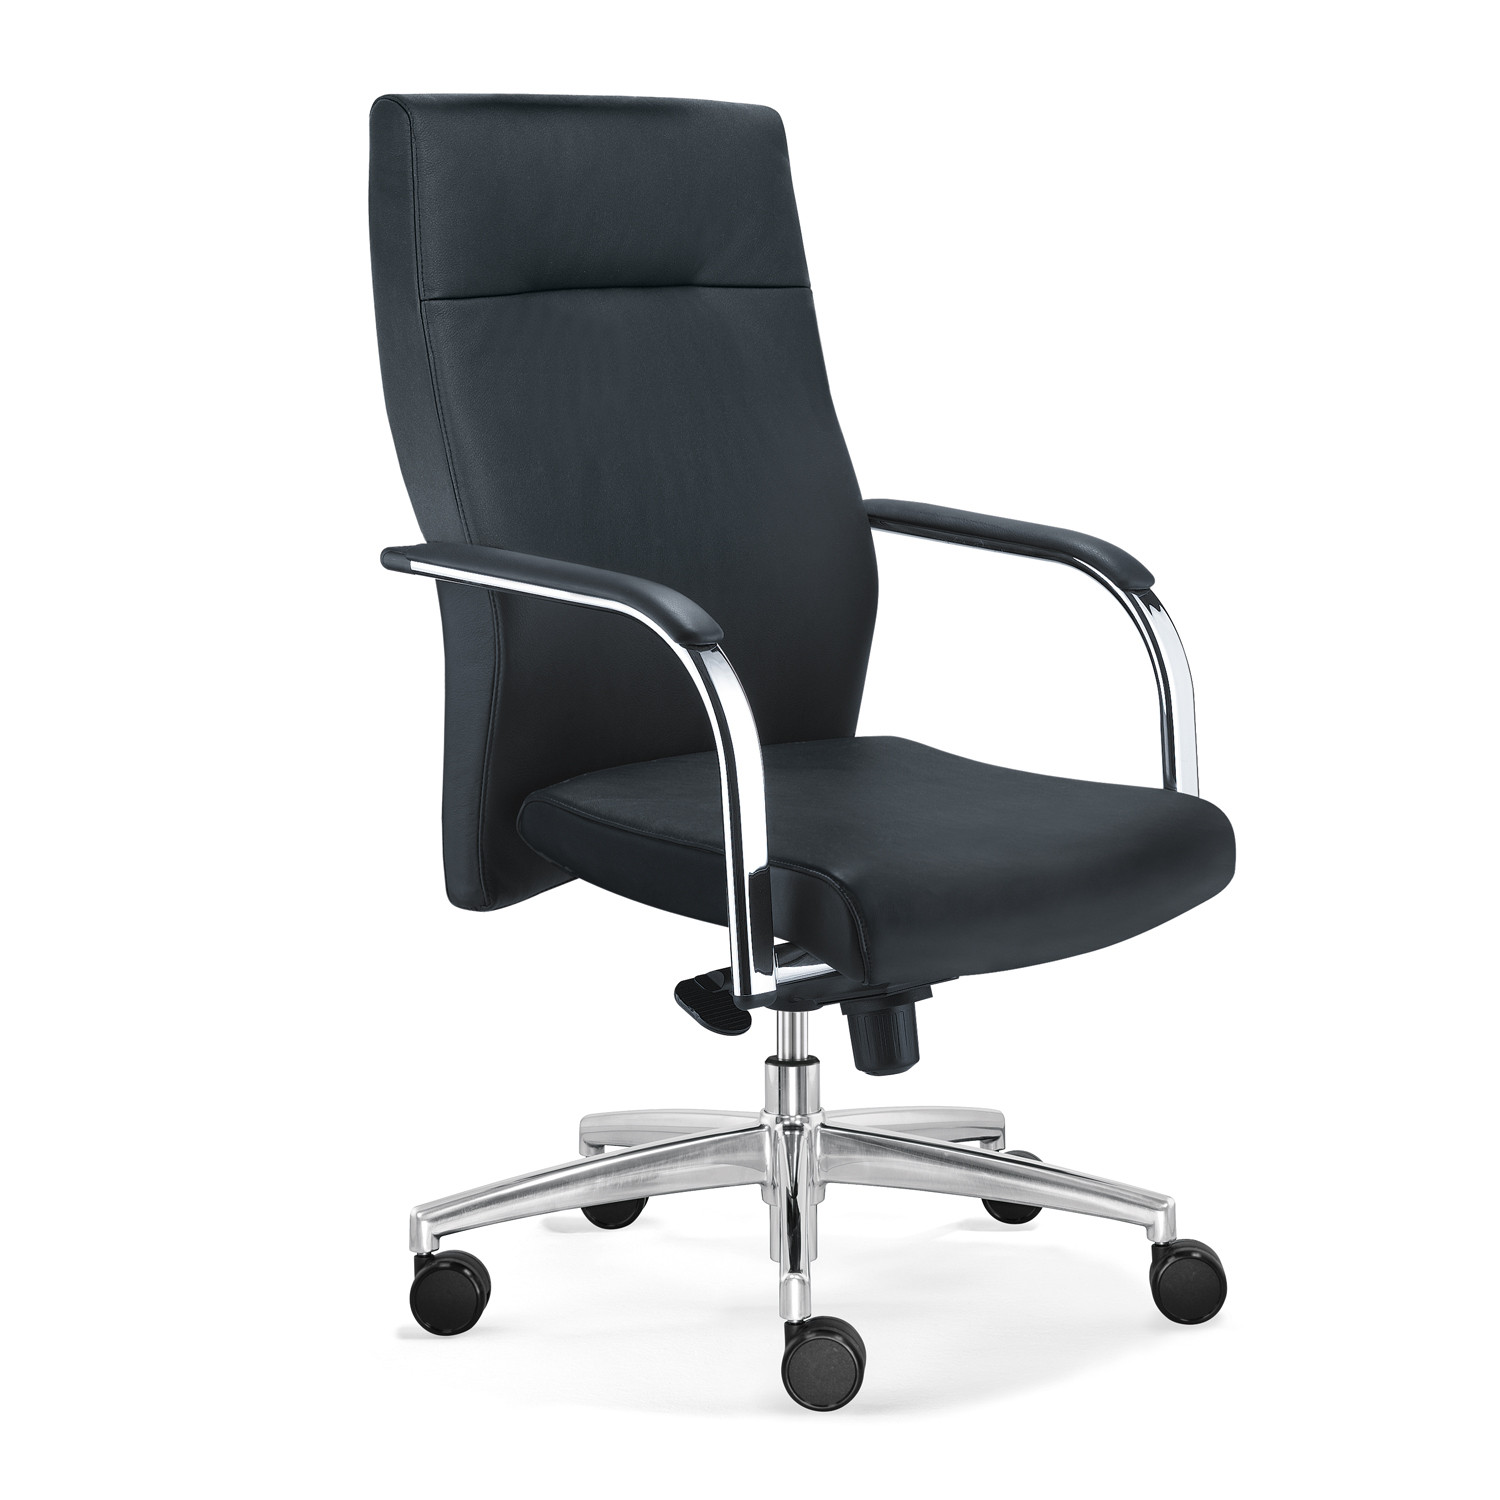 Sim-O Leather Upholstered Office Chair